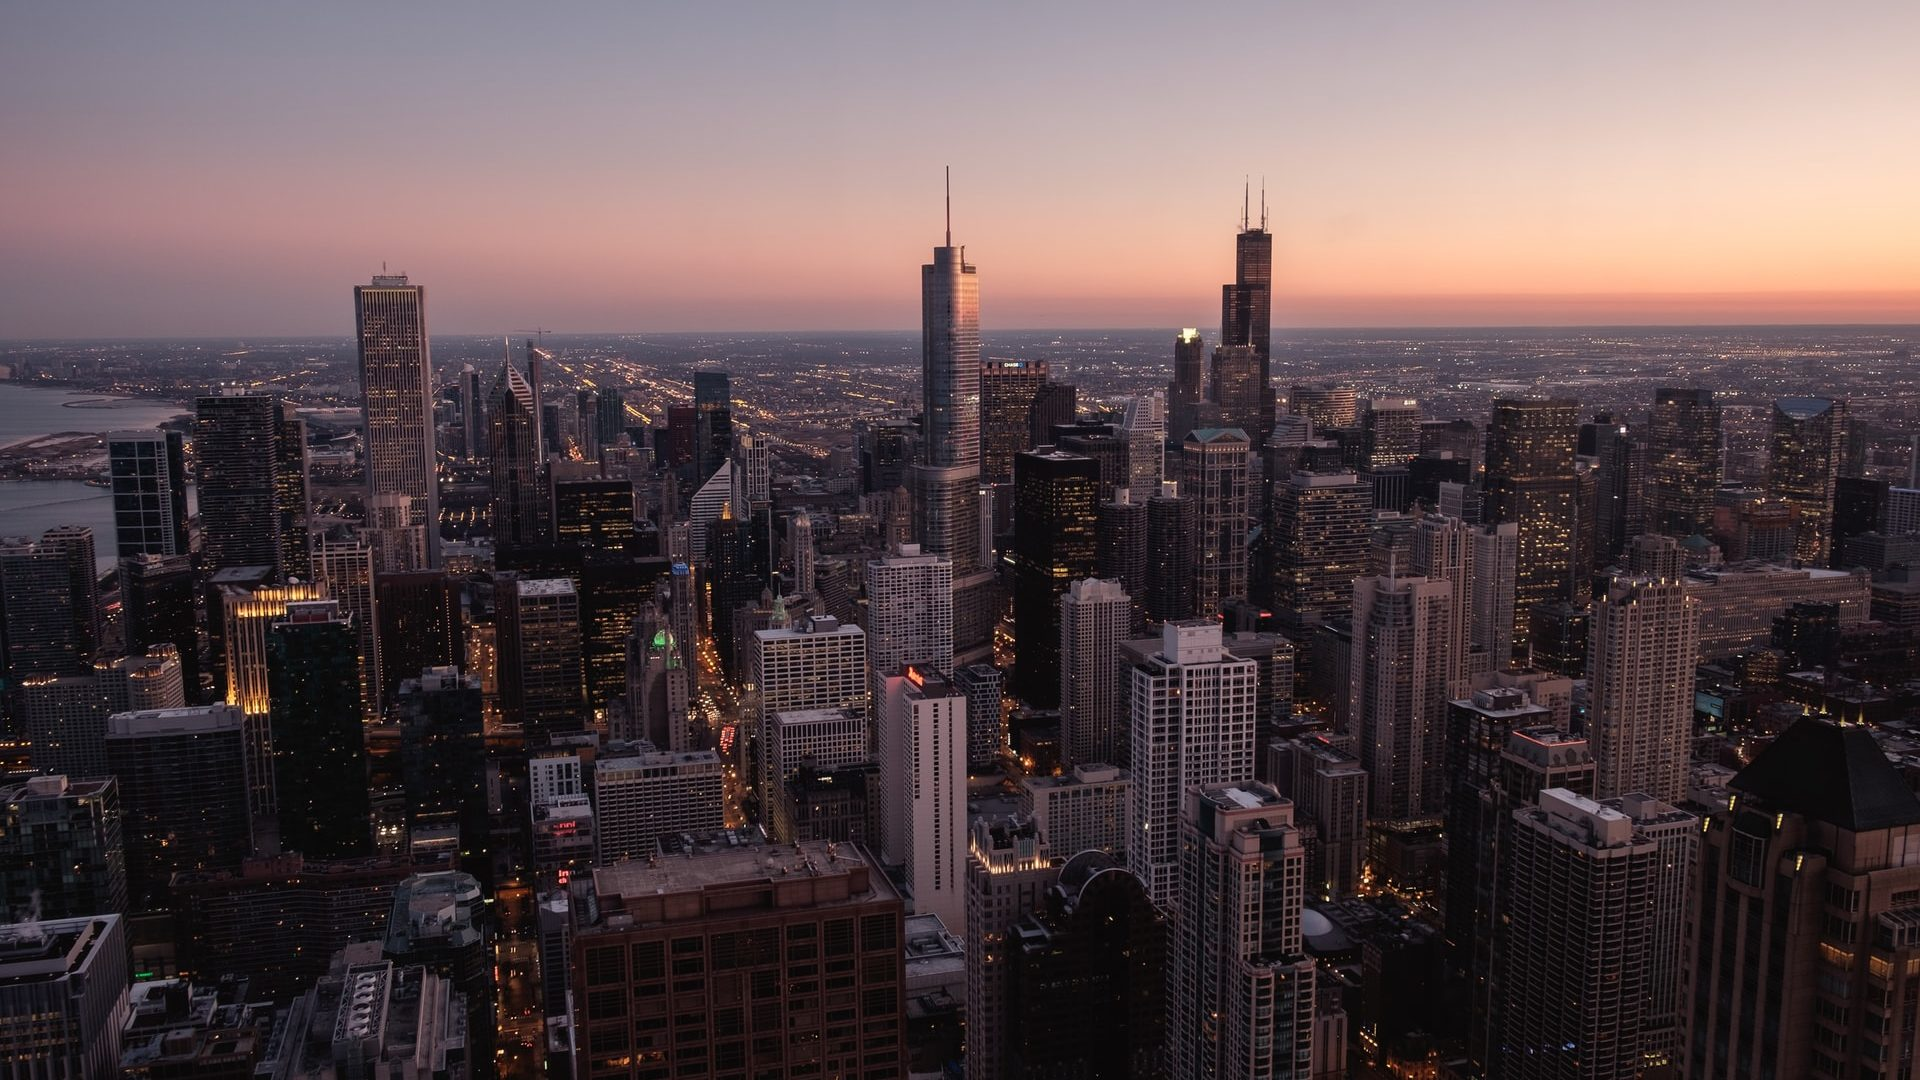 Illinois Finally Reports December Handle, Closing Out Record 2020